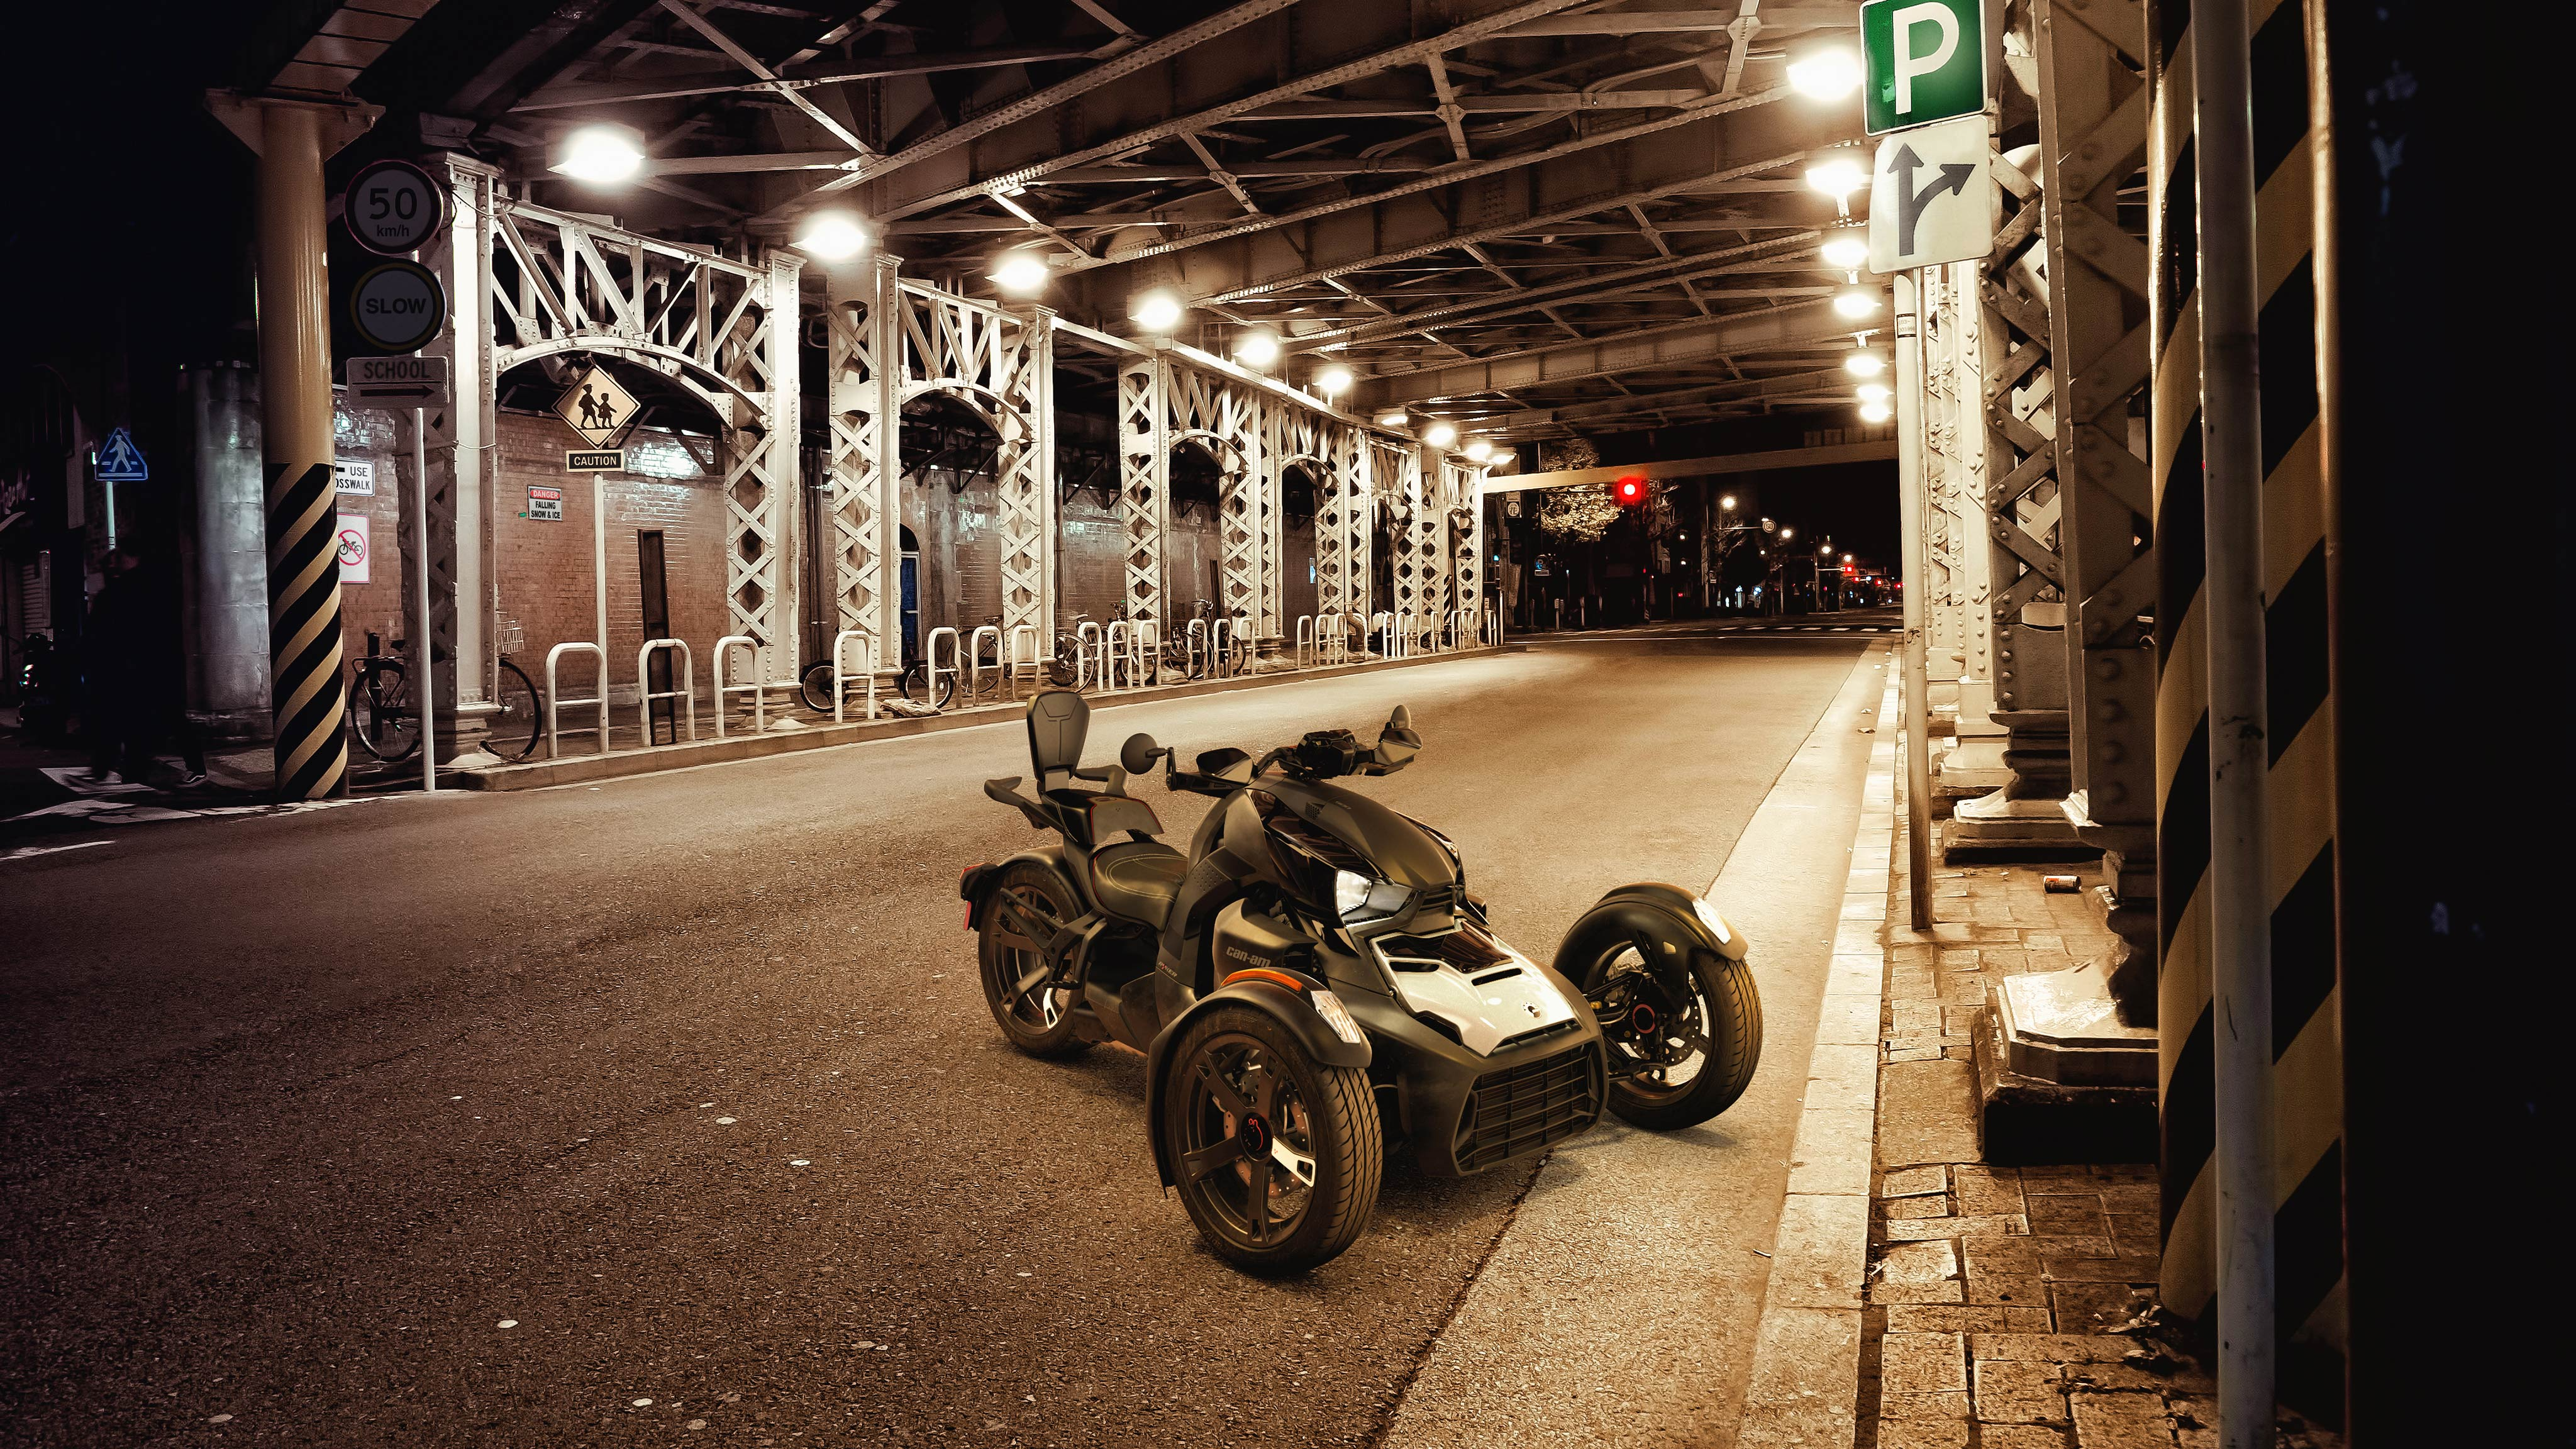 A Can-Am Ryker parked in an underground parking, with a 2-up accessory